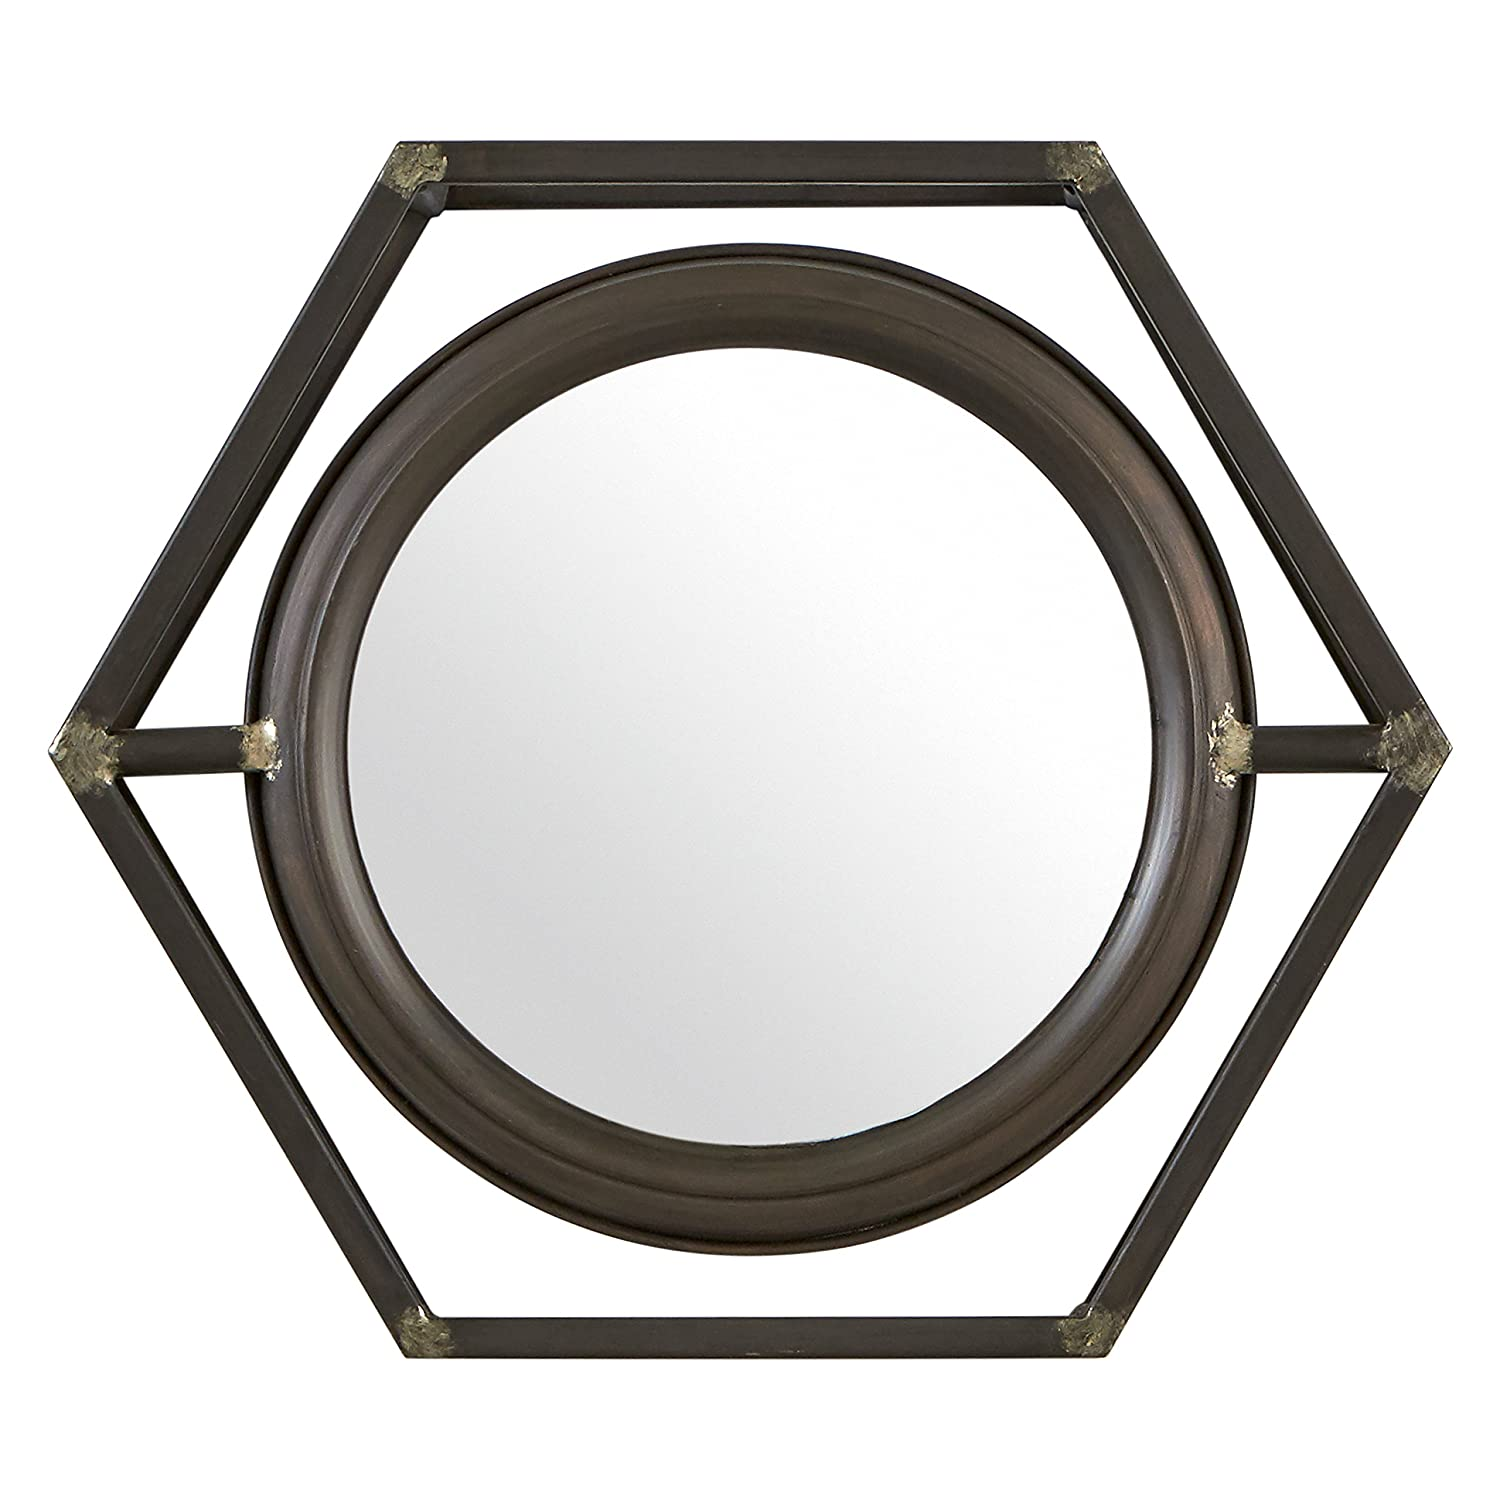 Stone & Beam Industrial Hexagonal Floating Metal Mirror, 12